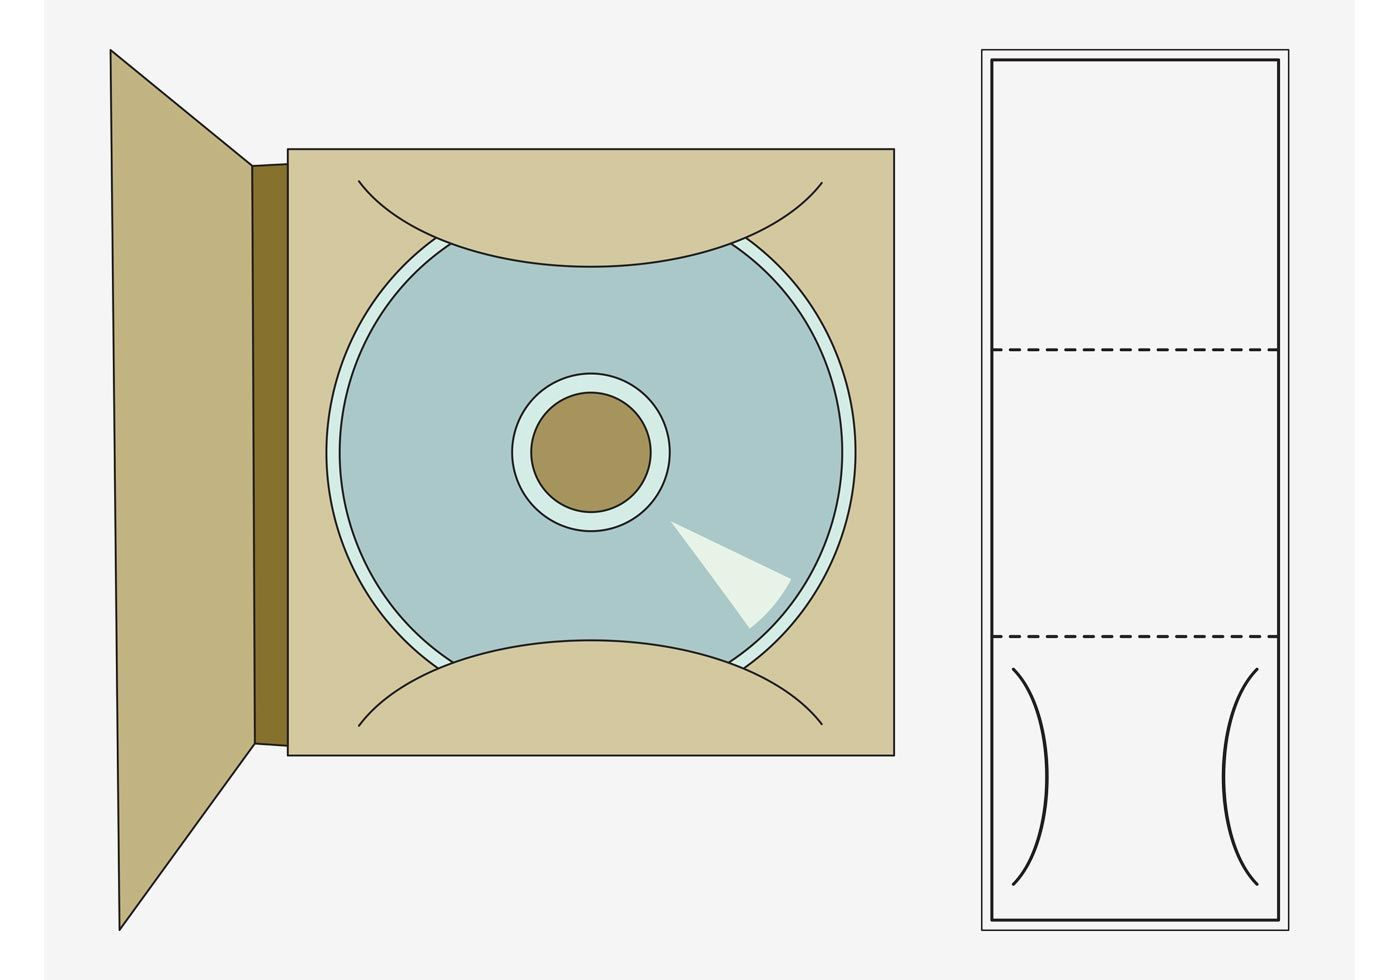 CD Case Template | Templates | Pinterest | Cd cases, Template and ...